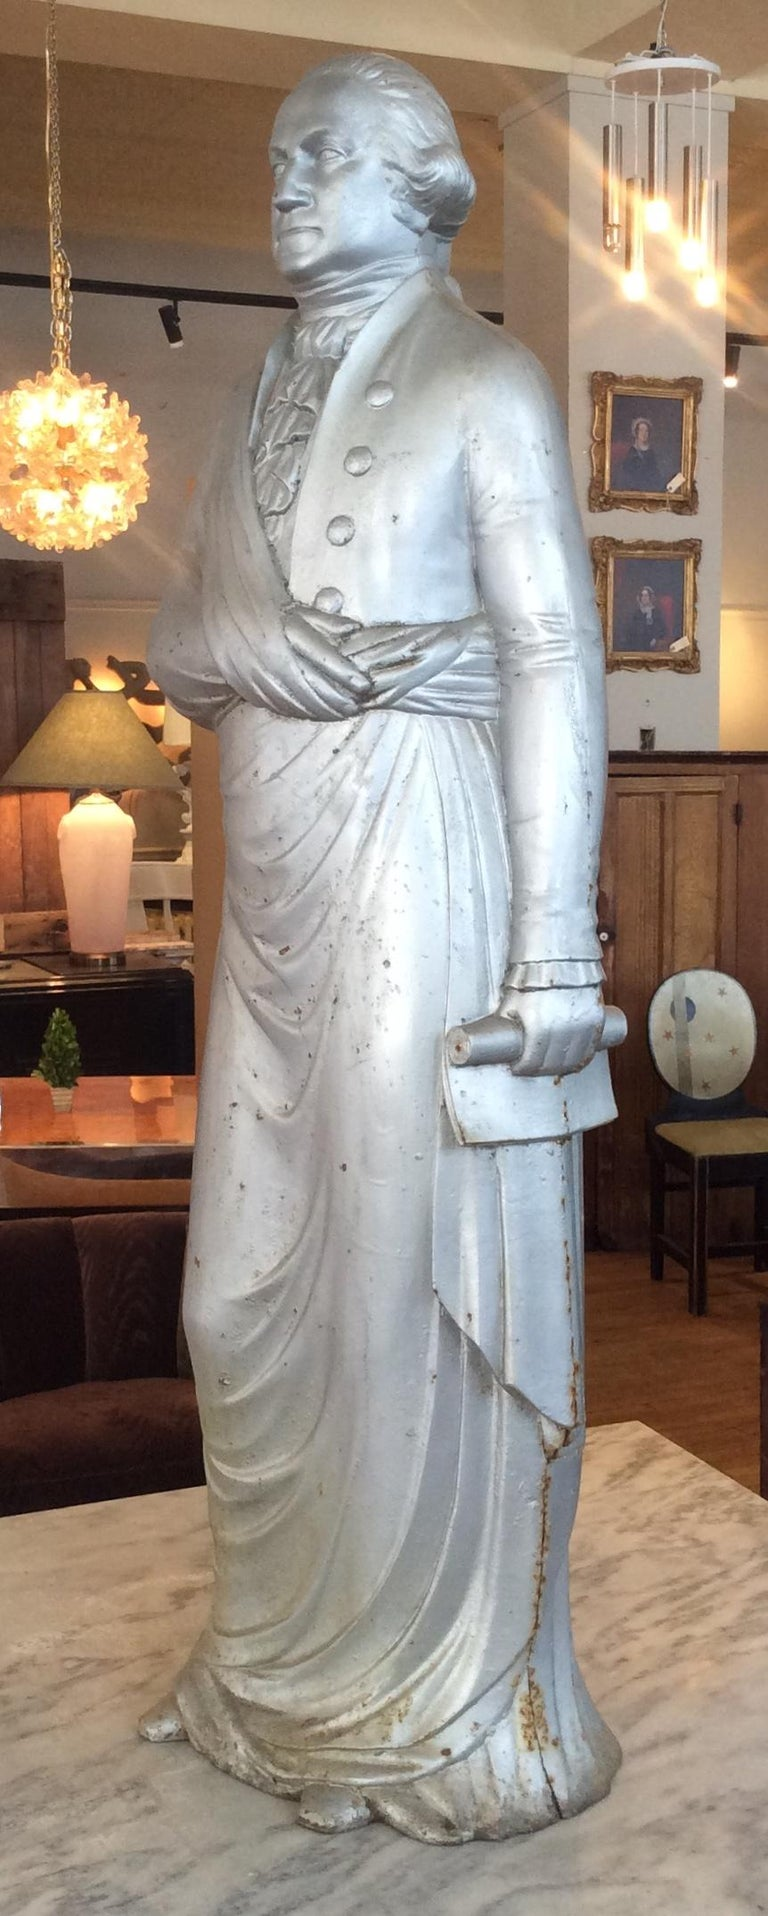 A rare example of this 19th century cast iron George Washington stove figure. The standing draped form holding a scrolled document in his left hand. These originally sat atop a 'dumb stove' and were designed to radiate heat into the room. (A dumb